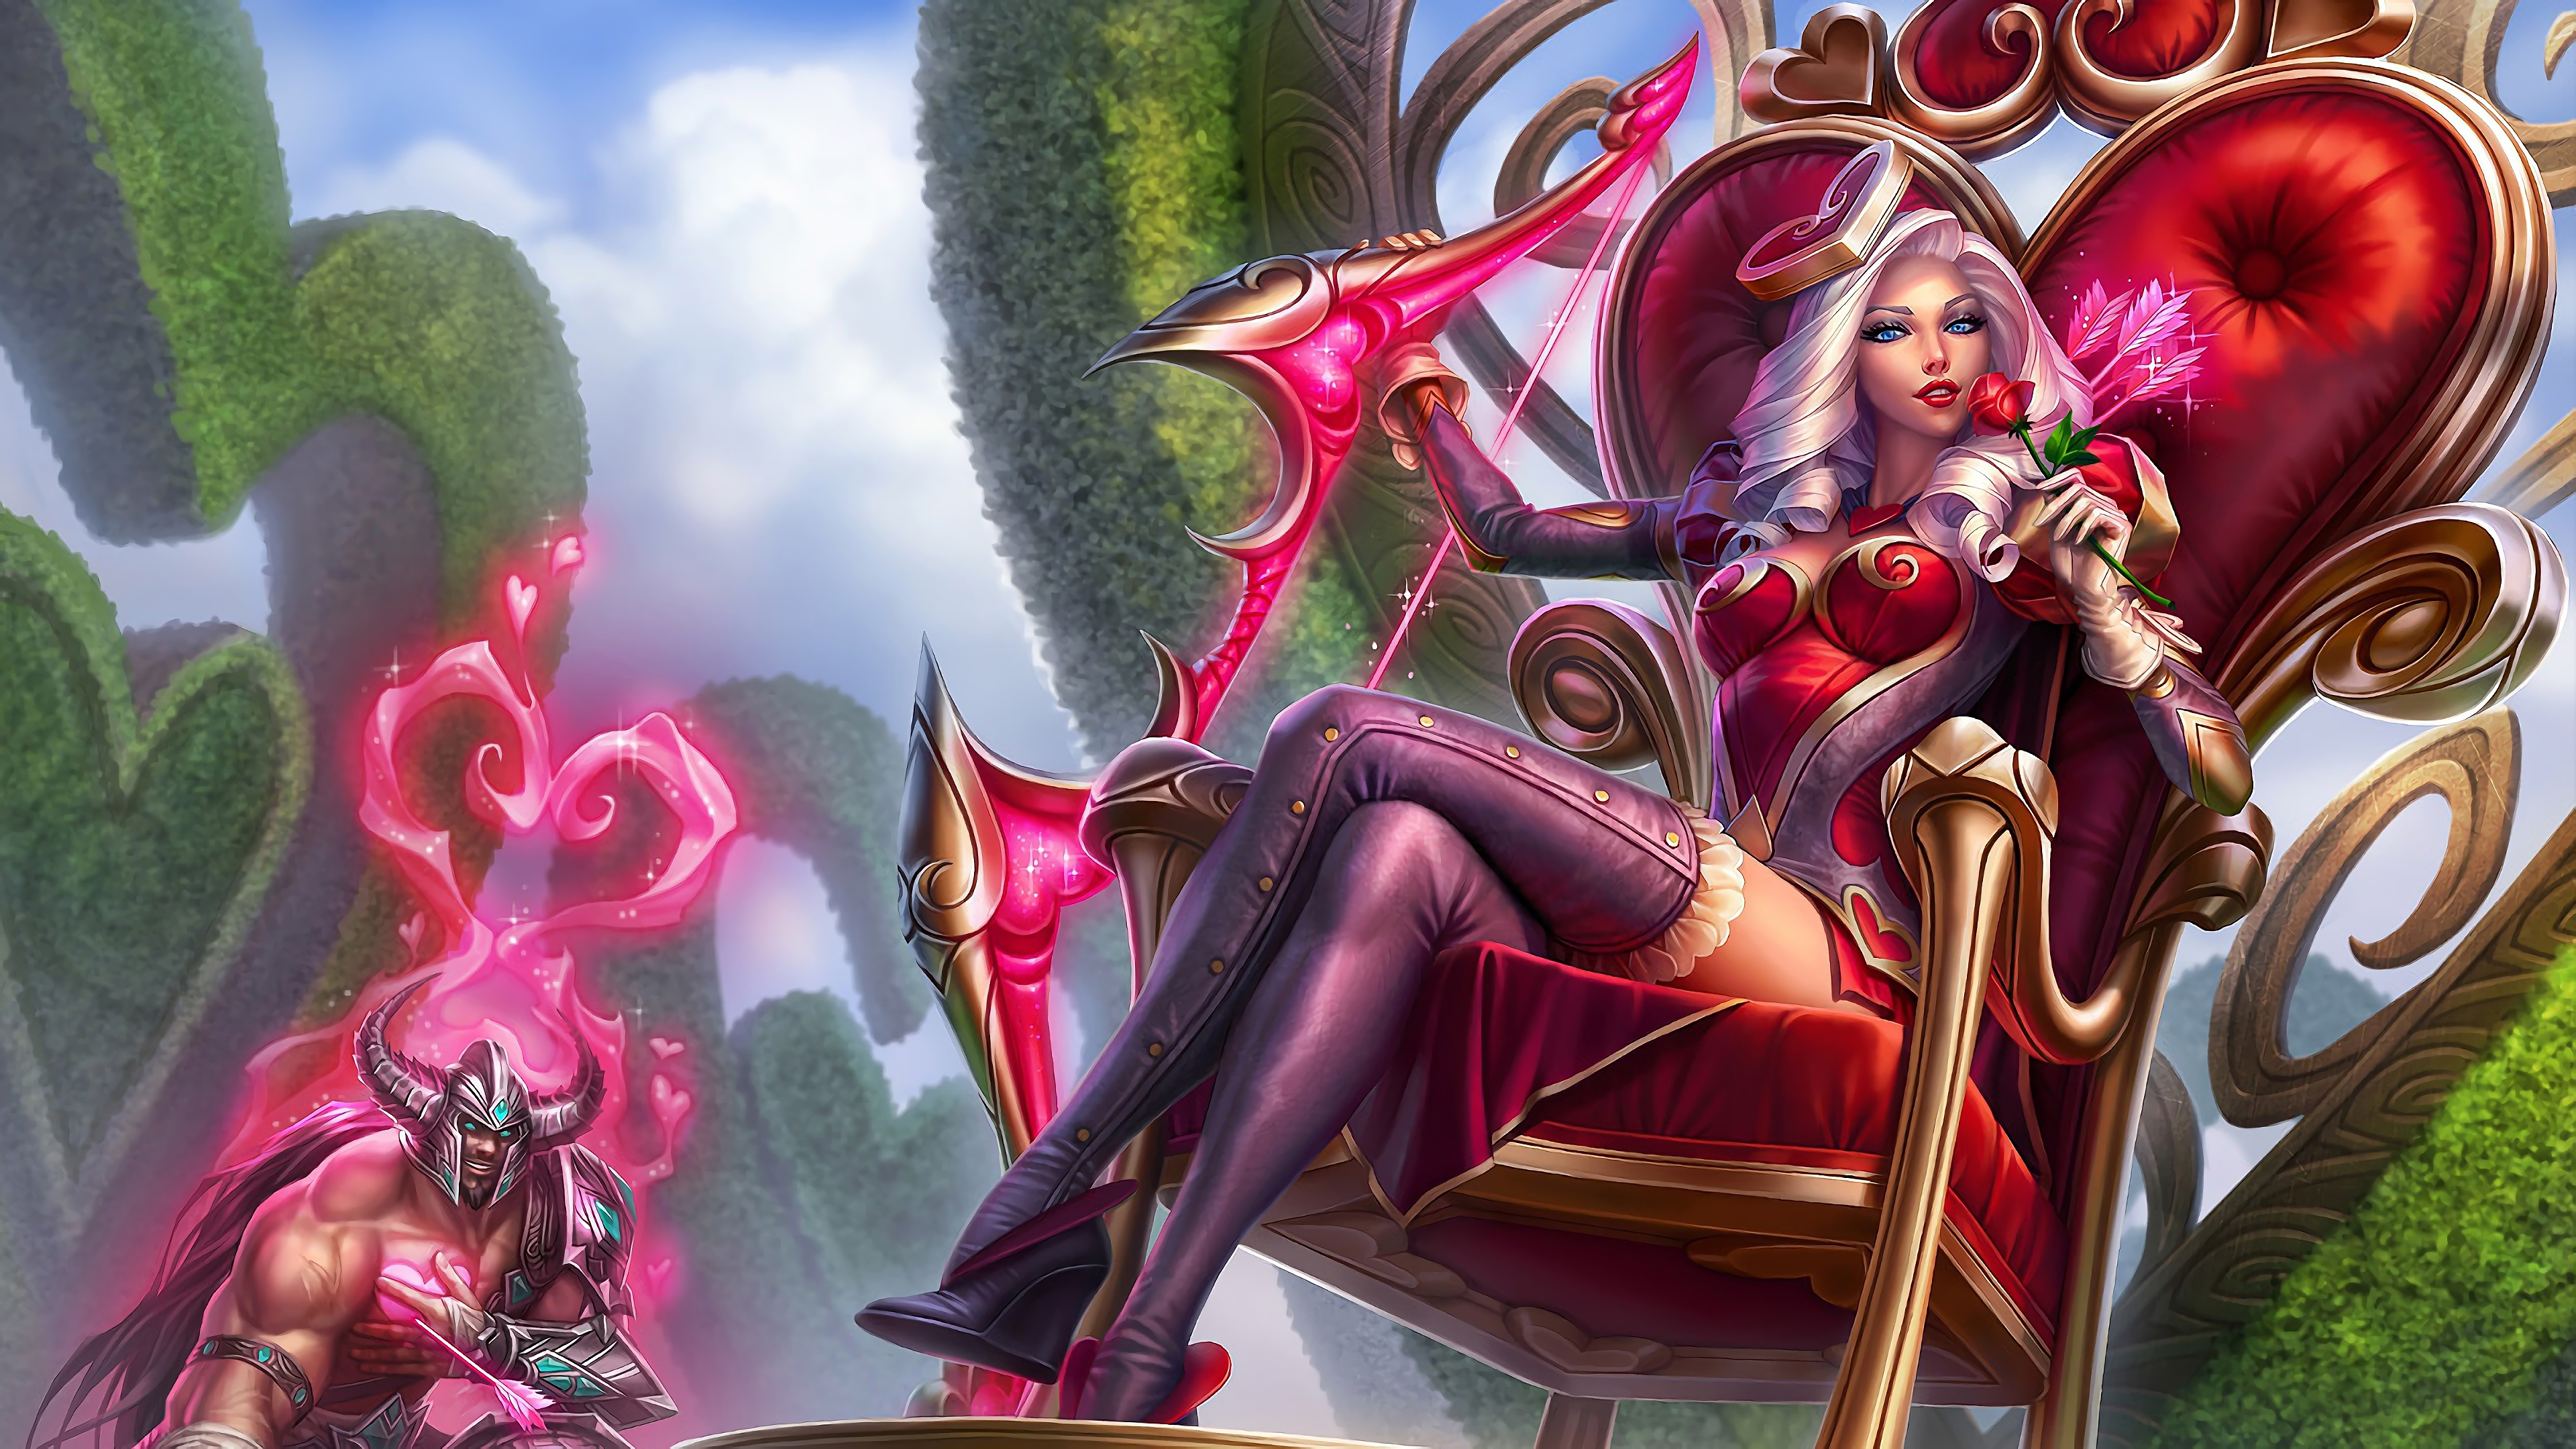 heartseeker ashe lol splash art league of legends lol 1574102616 - Heartseeker Ashe LoL Splash Art League of Legends lol - league of legends, Ashe